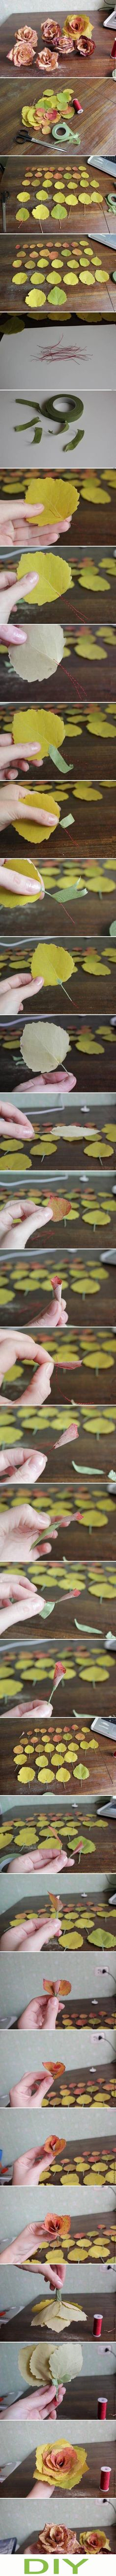 Make a rose from leaves! #DIY, #flower, #Valentine's